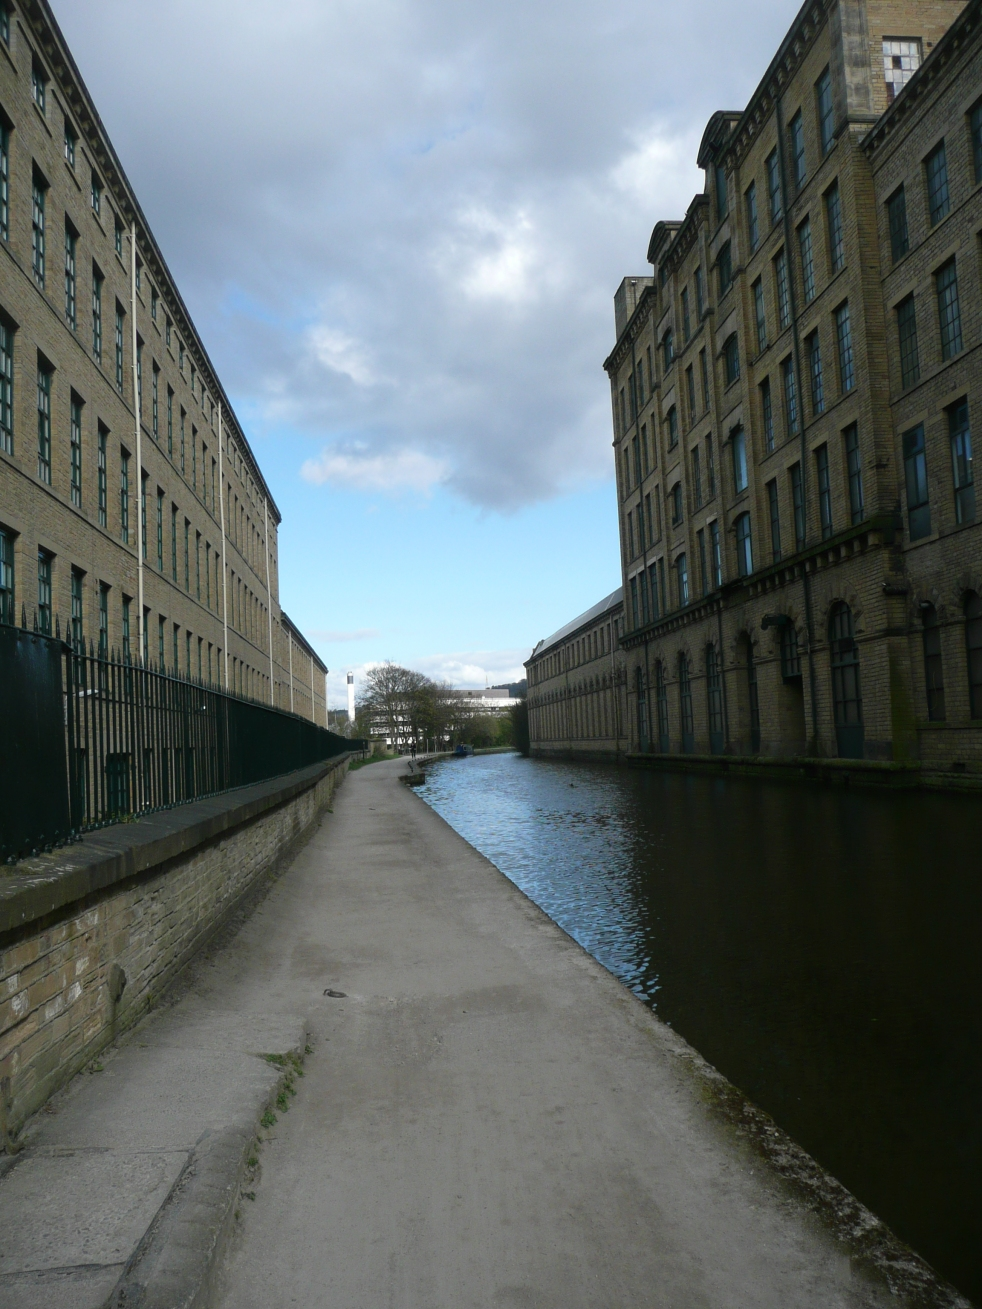 helena fairfax, salt's mill, saltaire